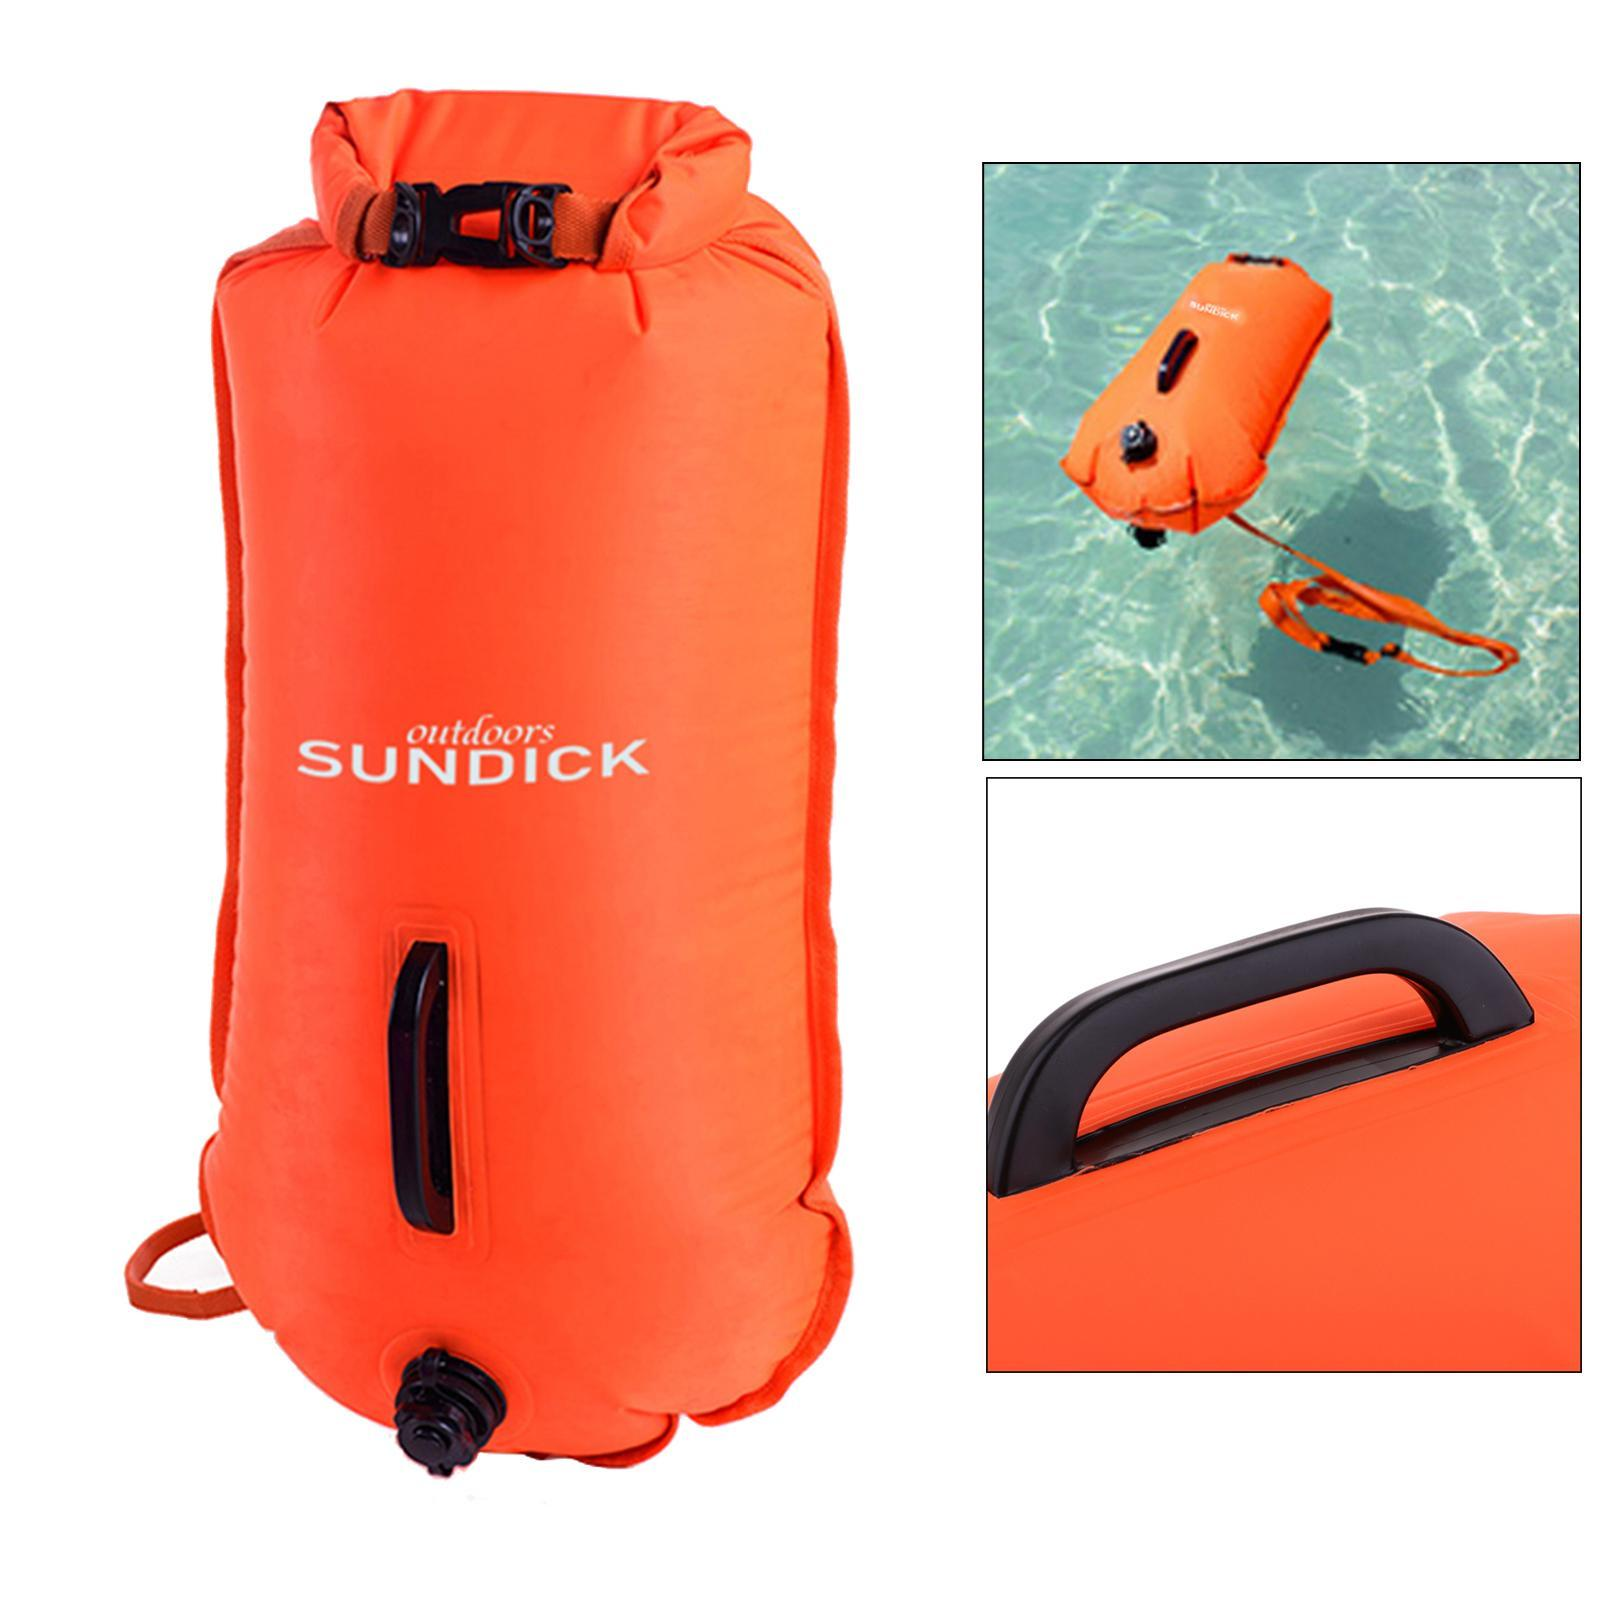 Safety-Swim-Buoy-Dry-Bag-Tow-Float-for-Open-Water-Swimmer-Swimming-Training thumbnail 6